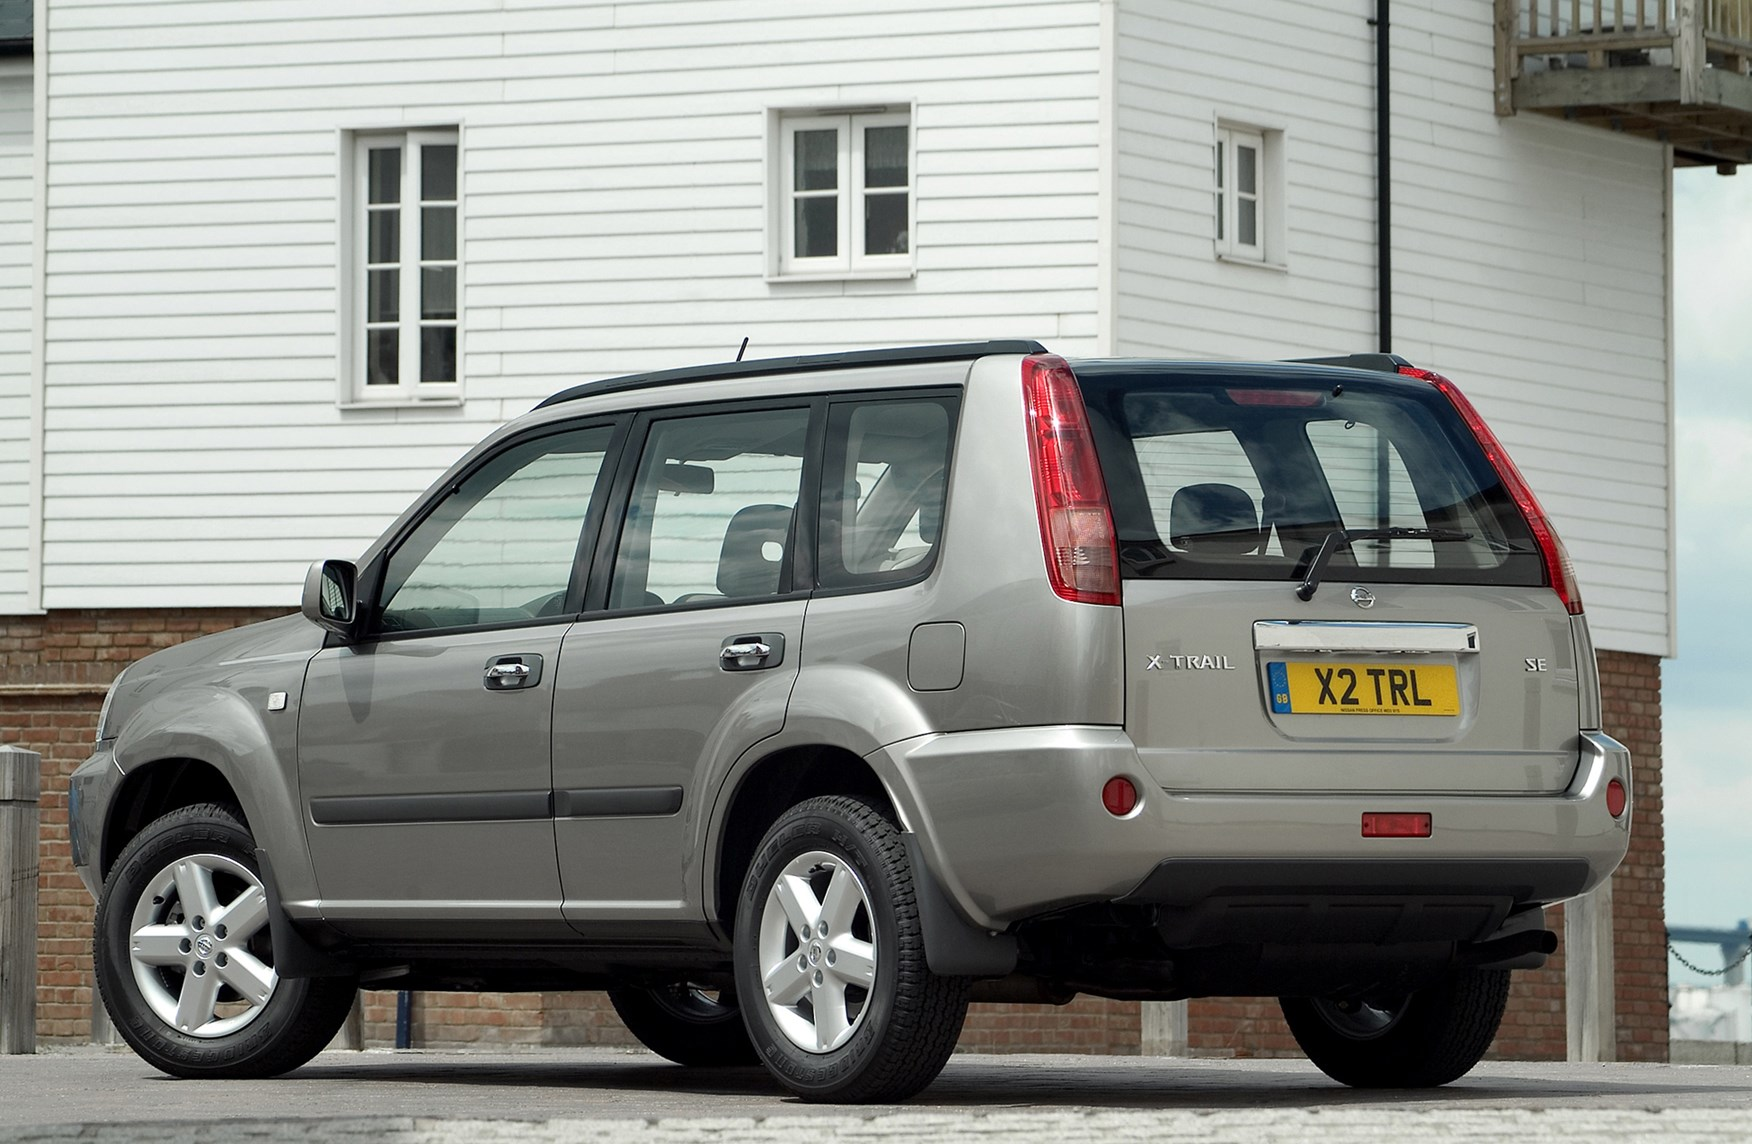 nissan x-trail station wagon (2001 - 2007) features, equipment and